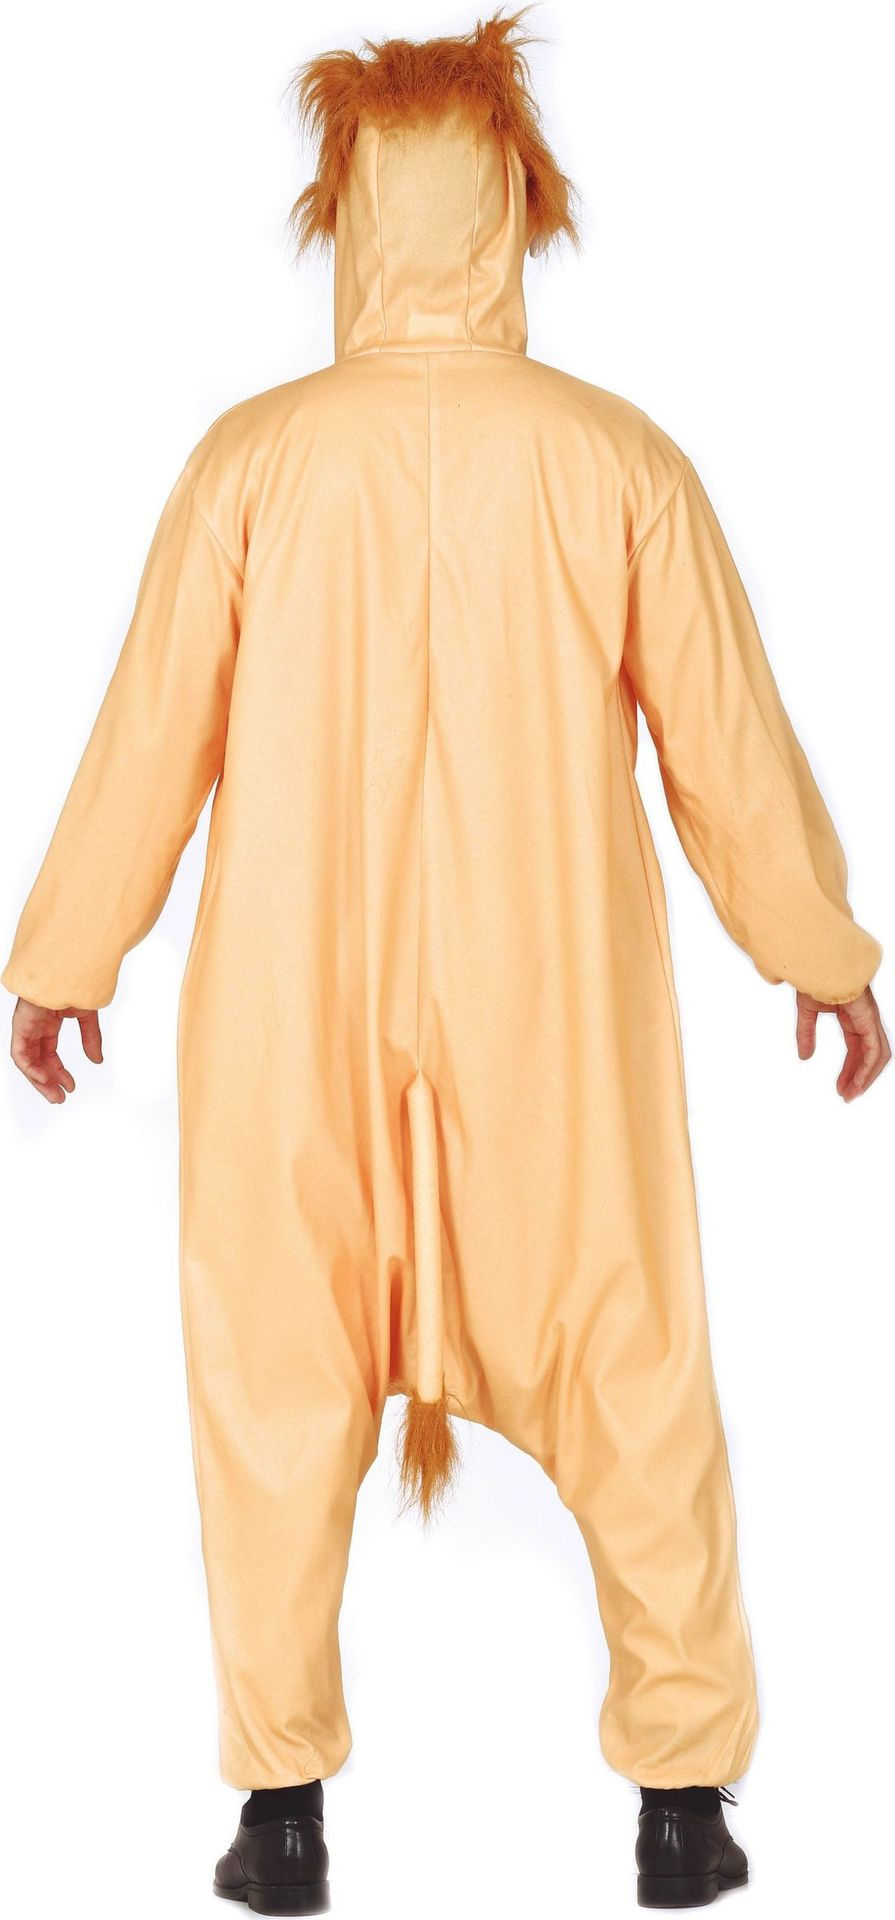 The Lion King onesie